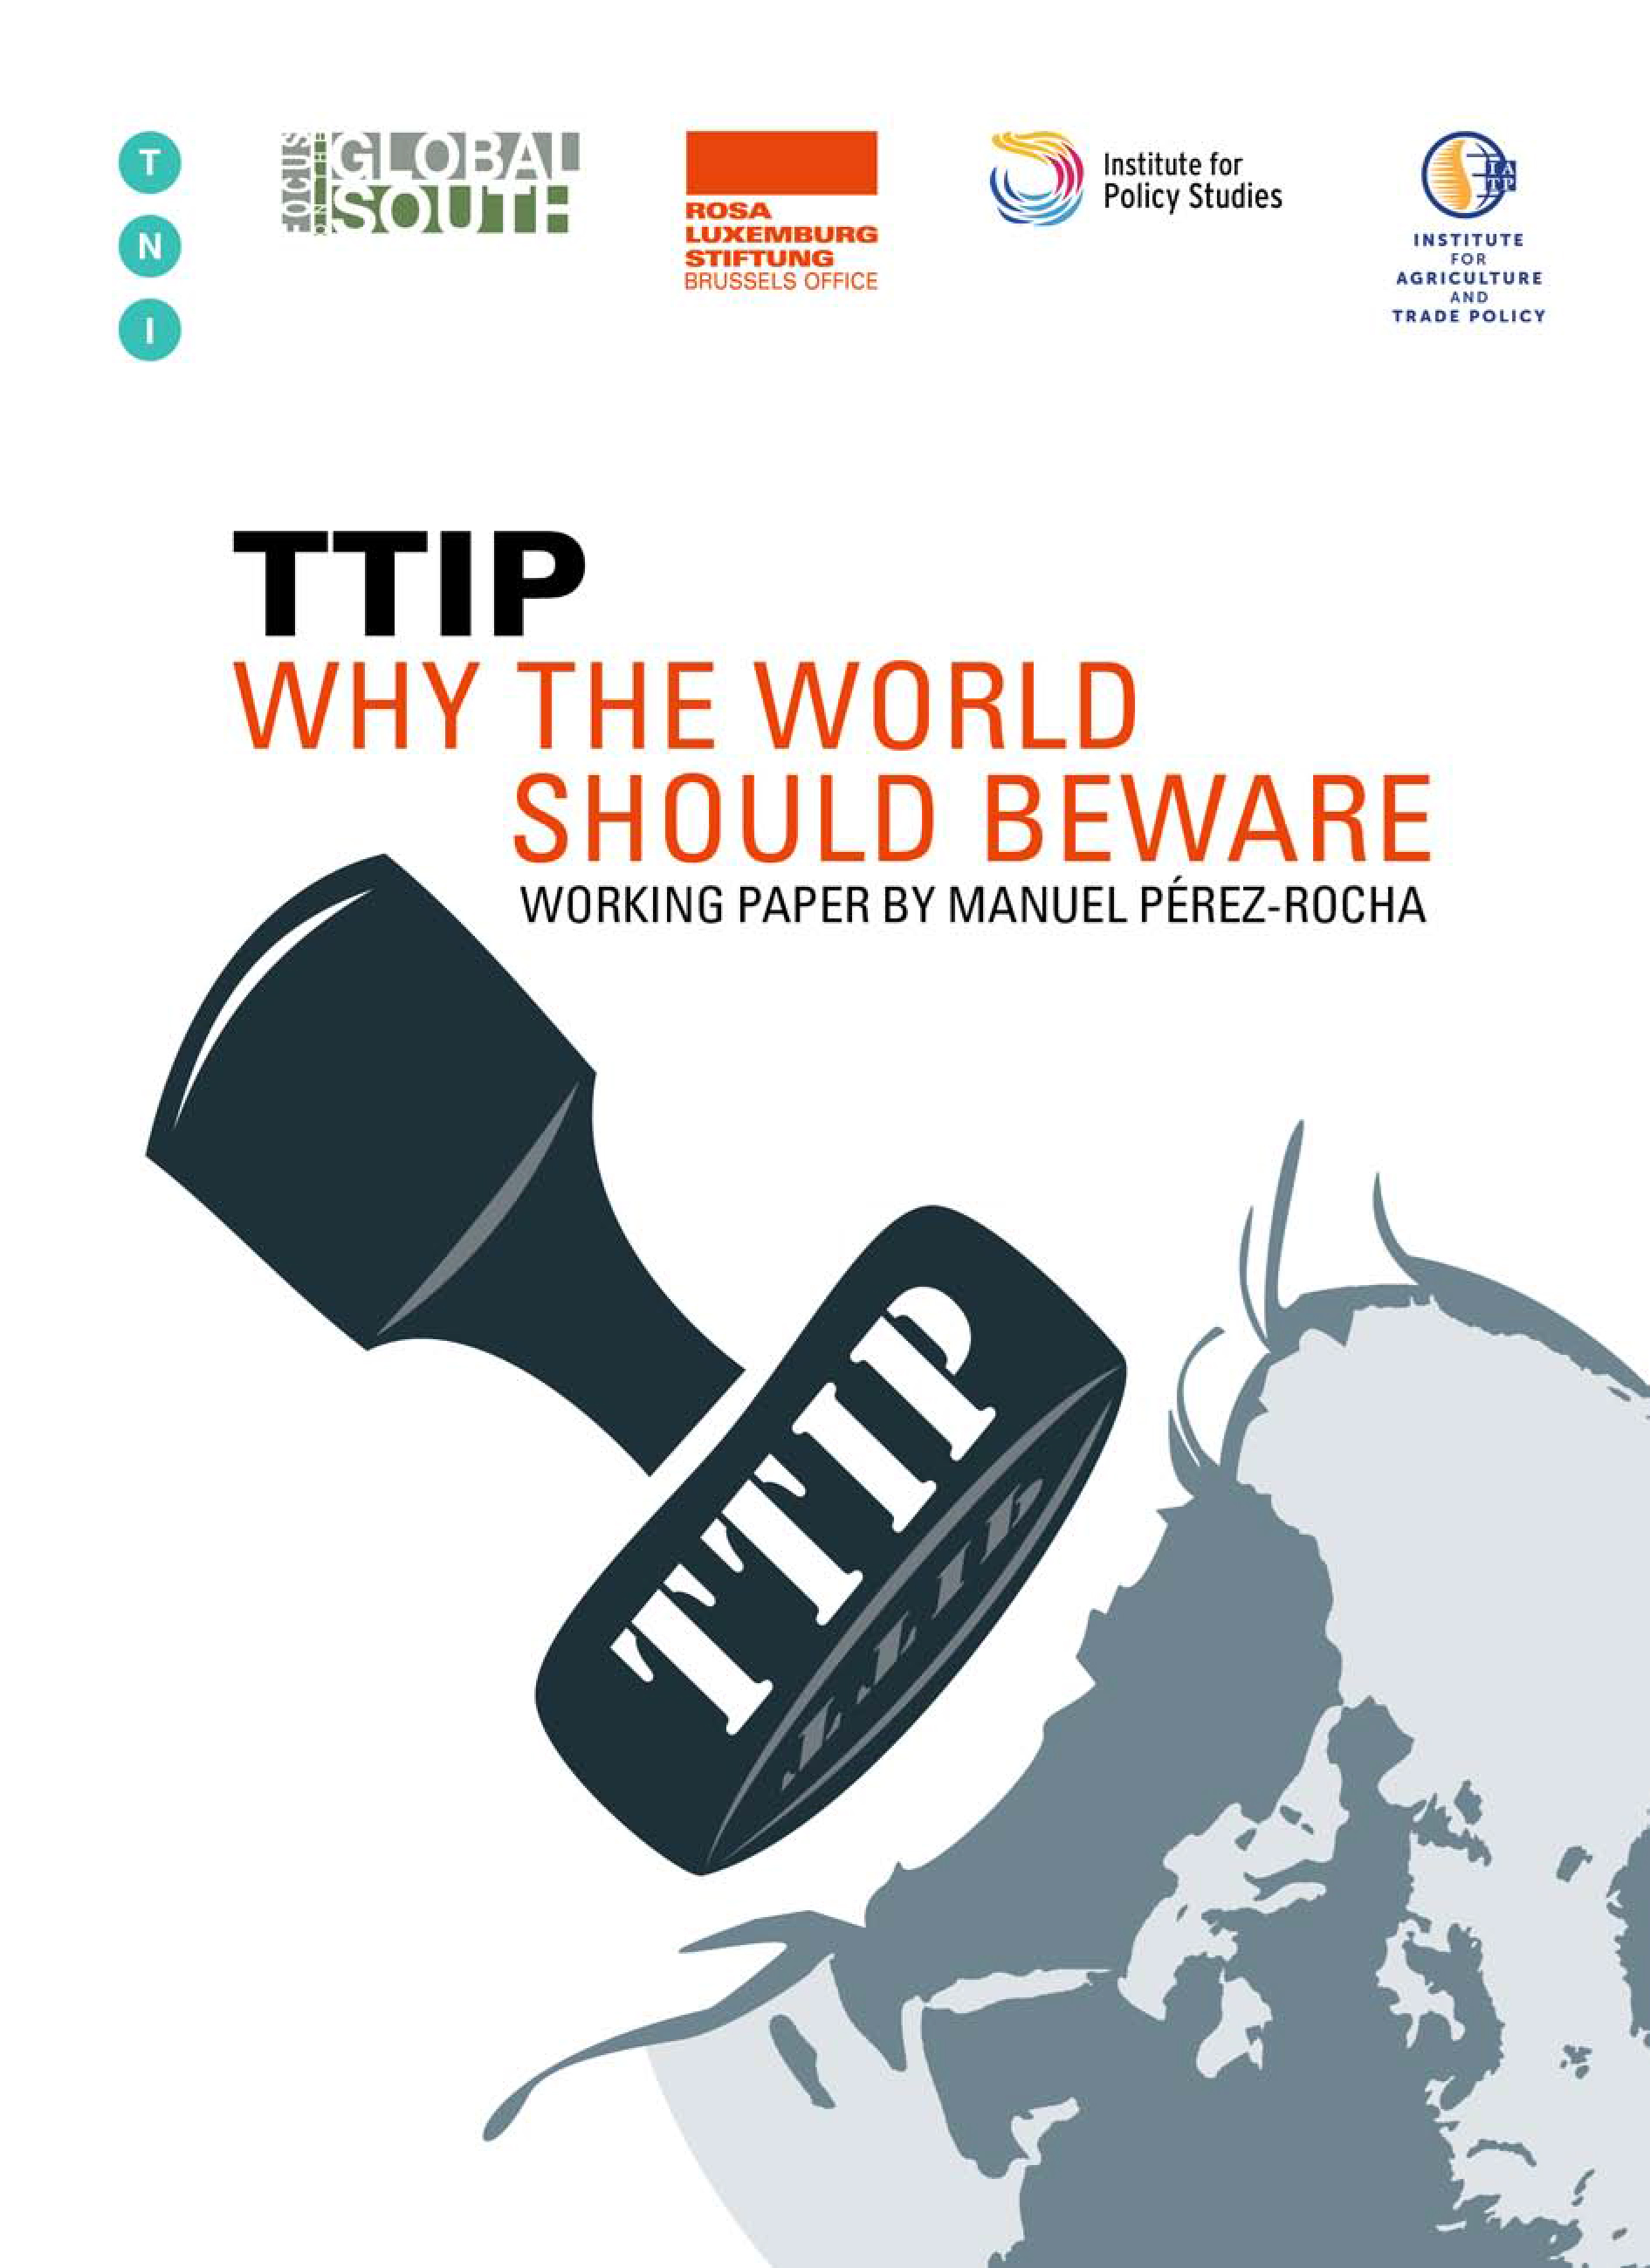 TTIP: Why the World Should Beware